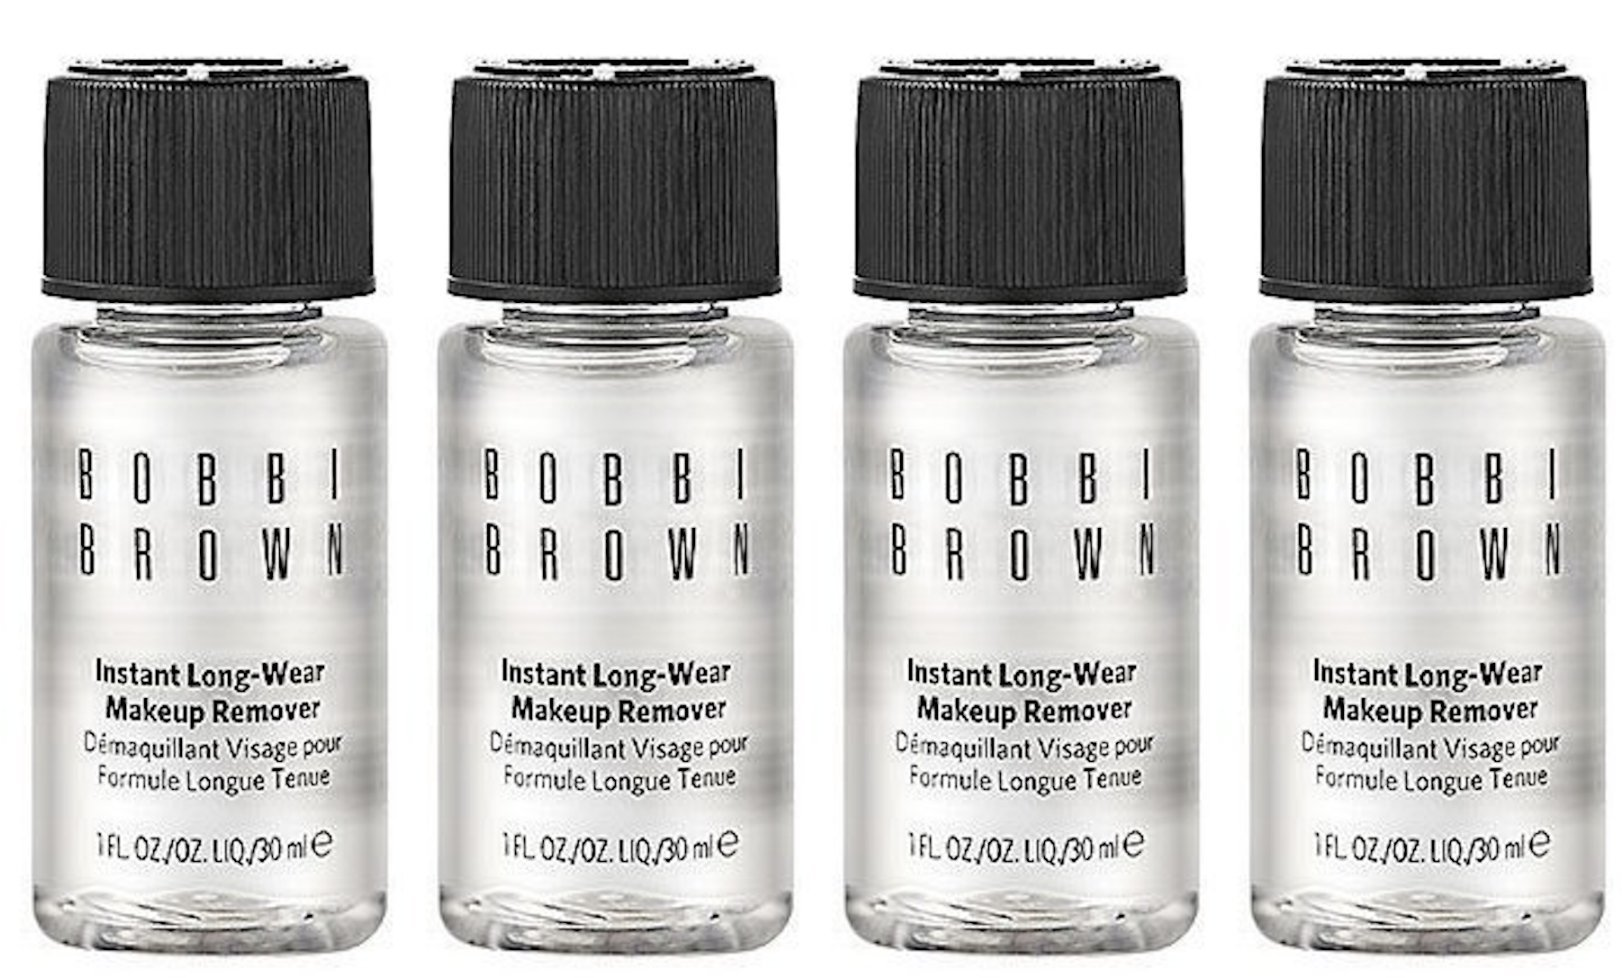 Bobbi Brown Instant Long-Wear Makeup Remover 1oz/30ml Each Lot of 4